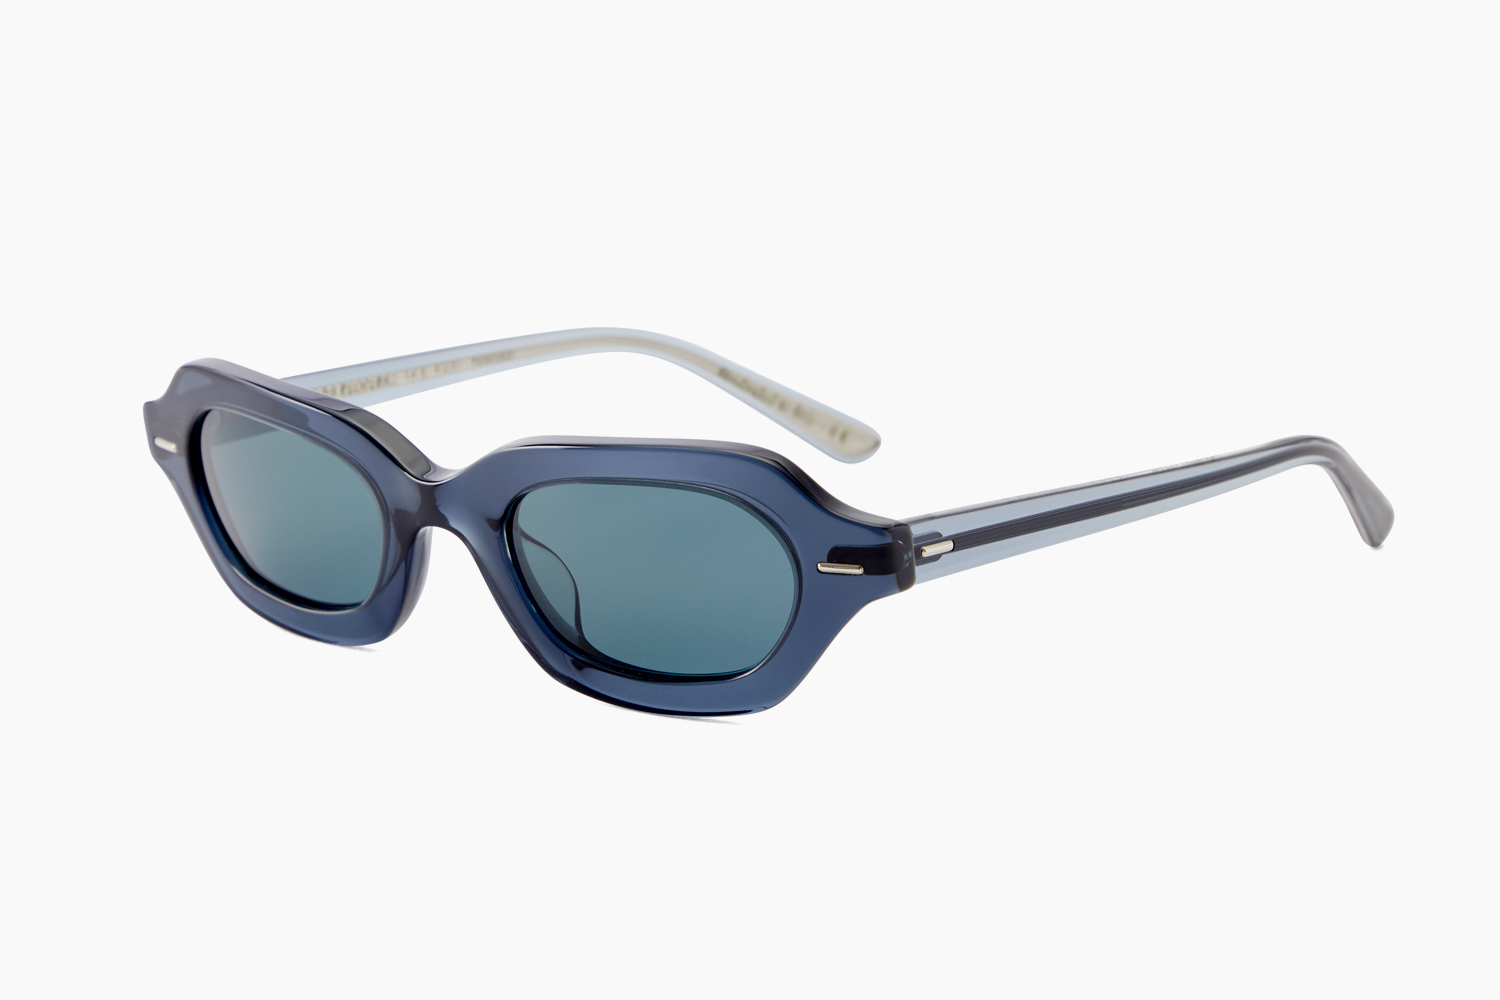 OLIVER PEOPLES THE ROW|L.A. CC - 16643R|OLIVER PEOPLES